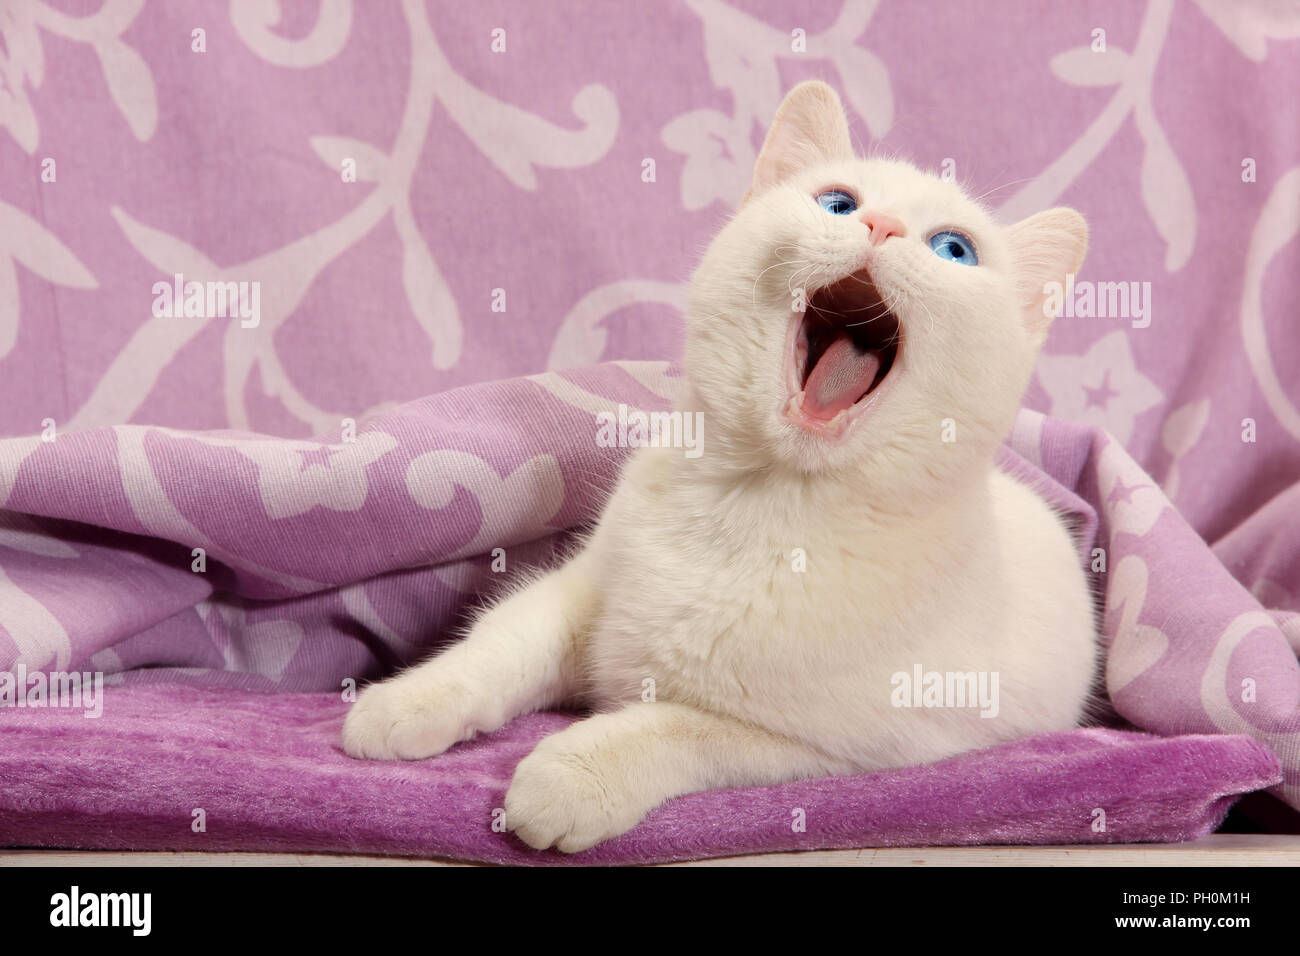 white cat yawning - Stock Image